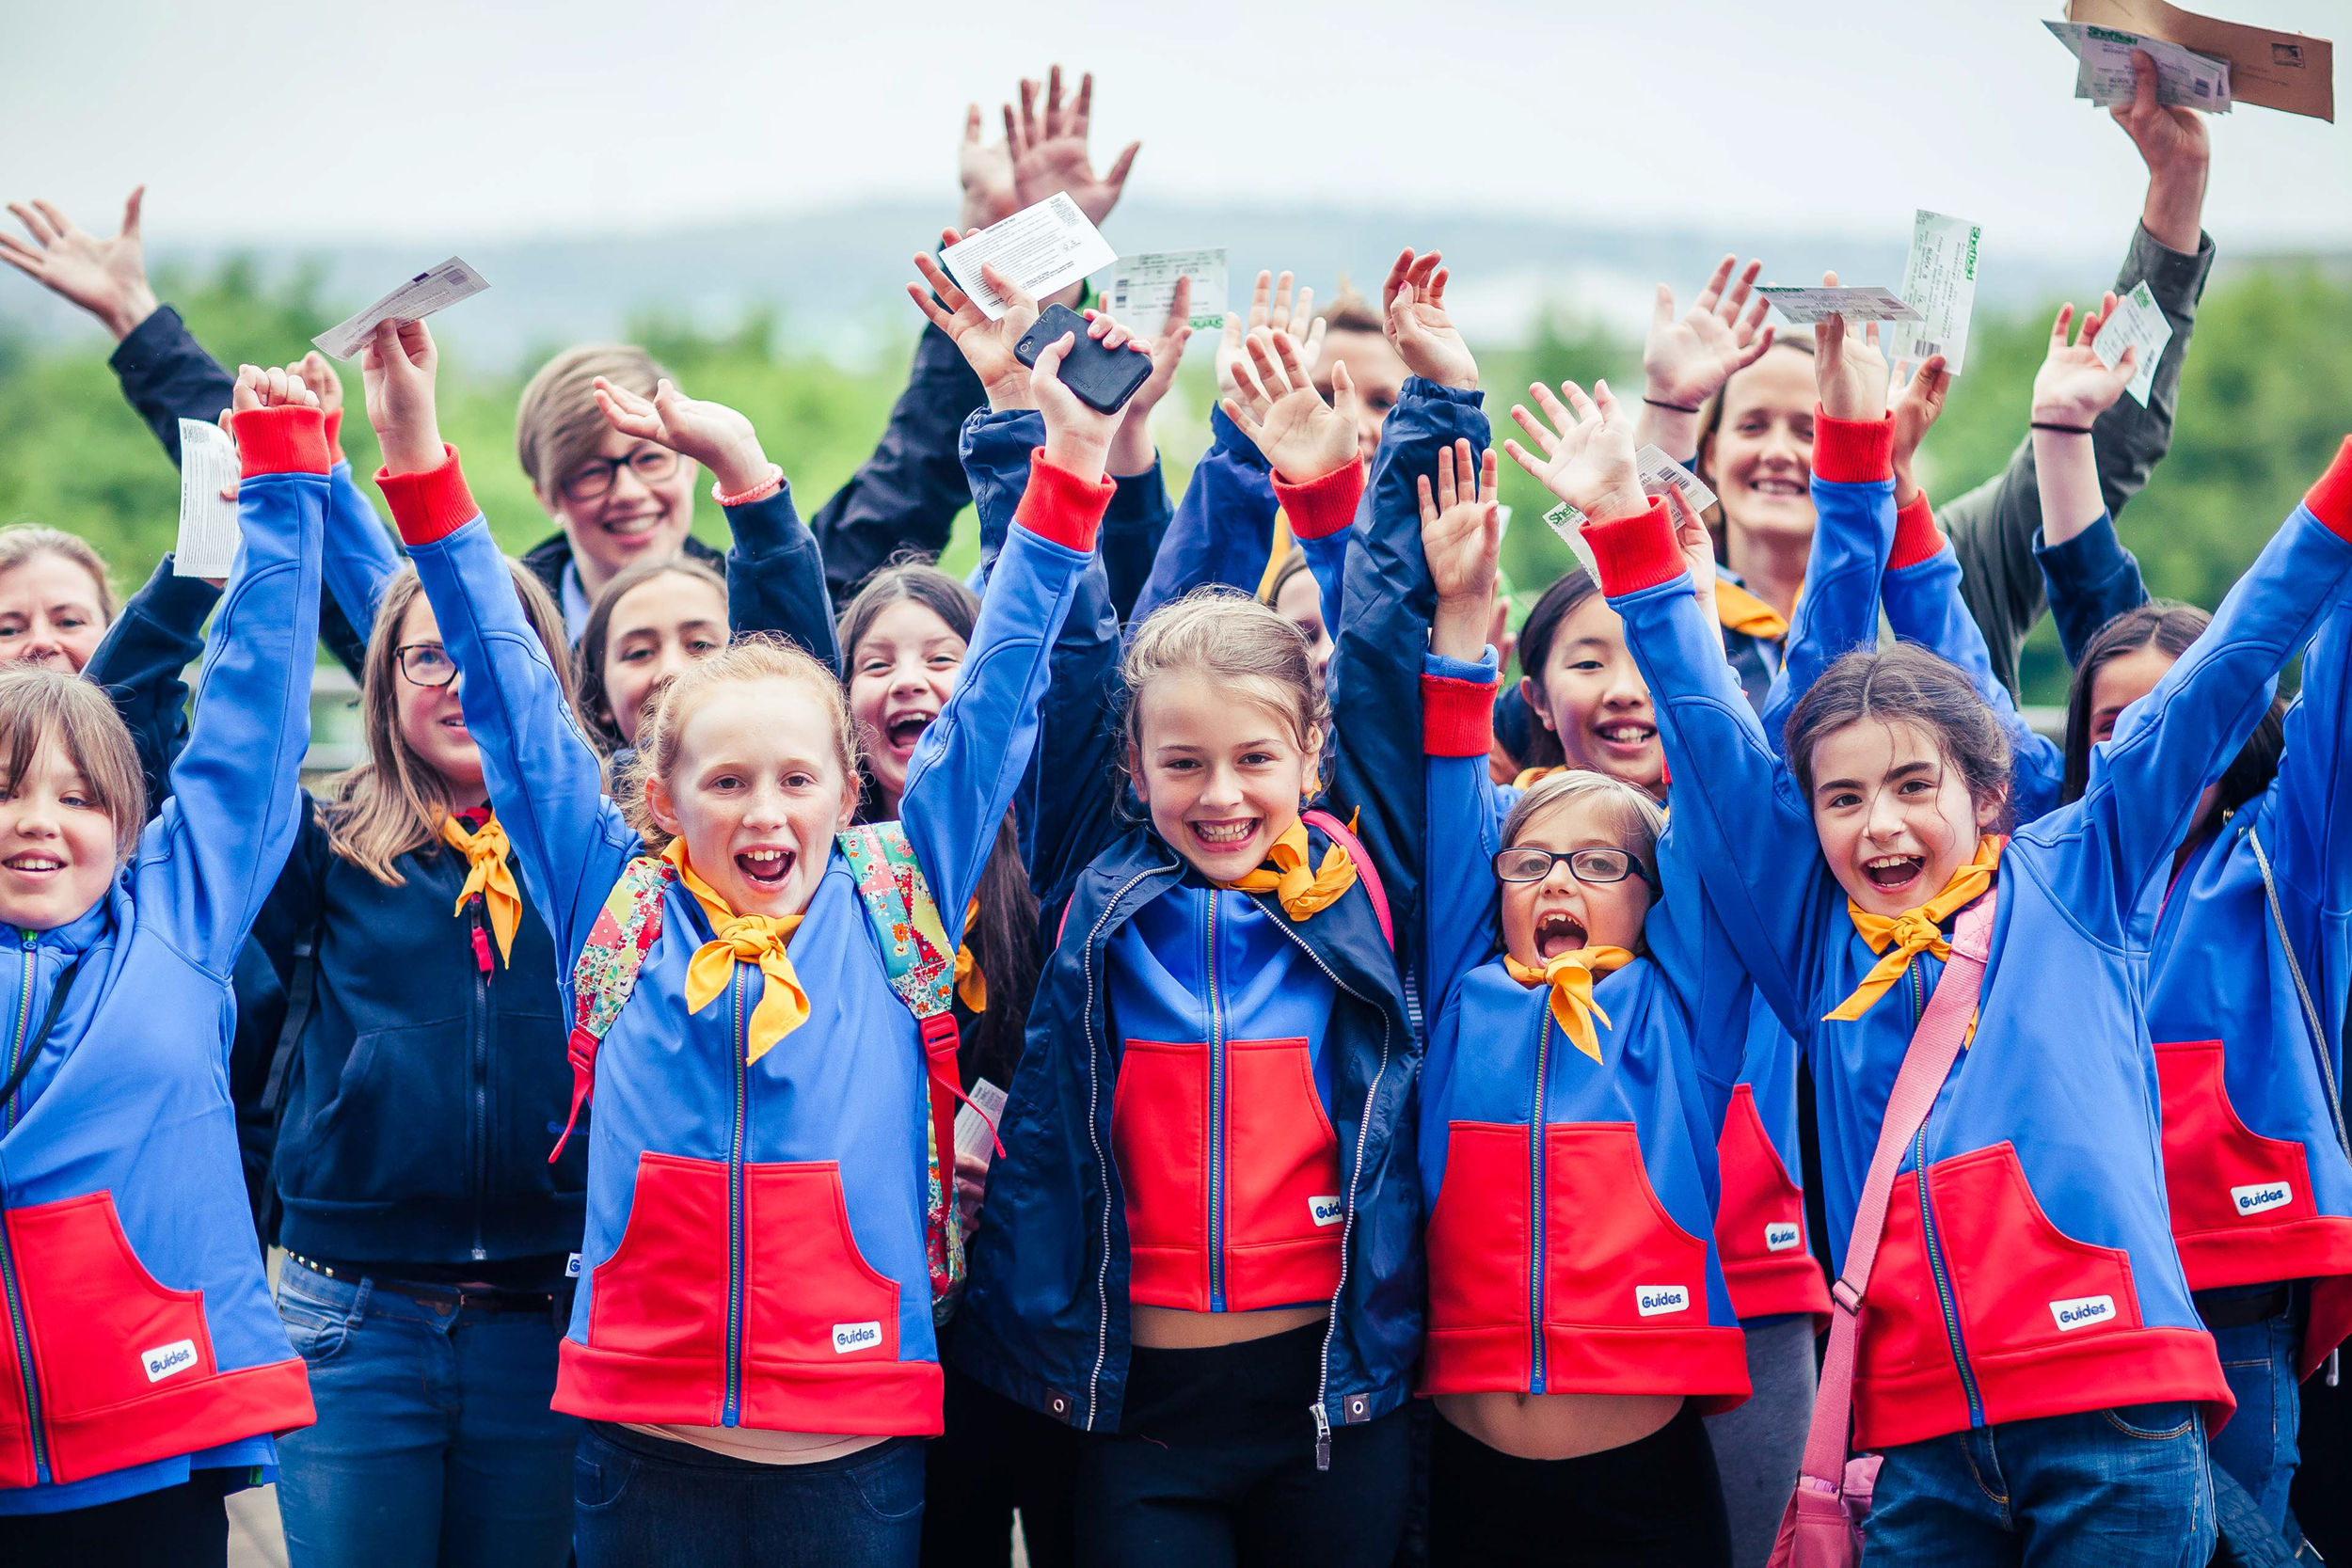 Girlguiding reveals popularity of new digital skills badges for girls